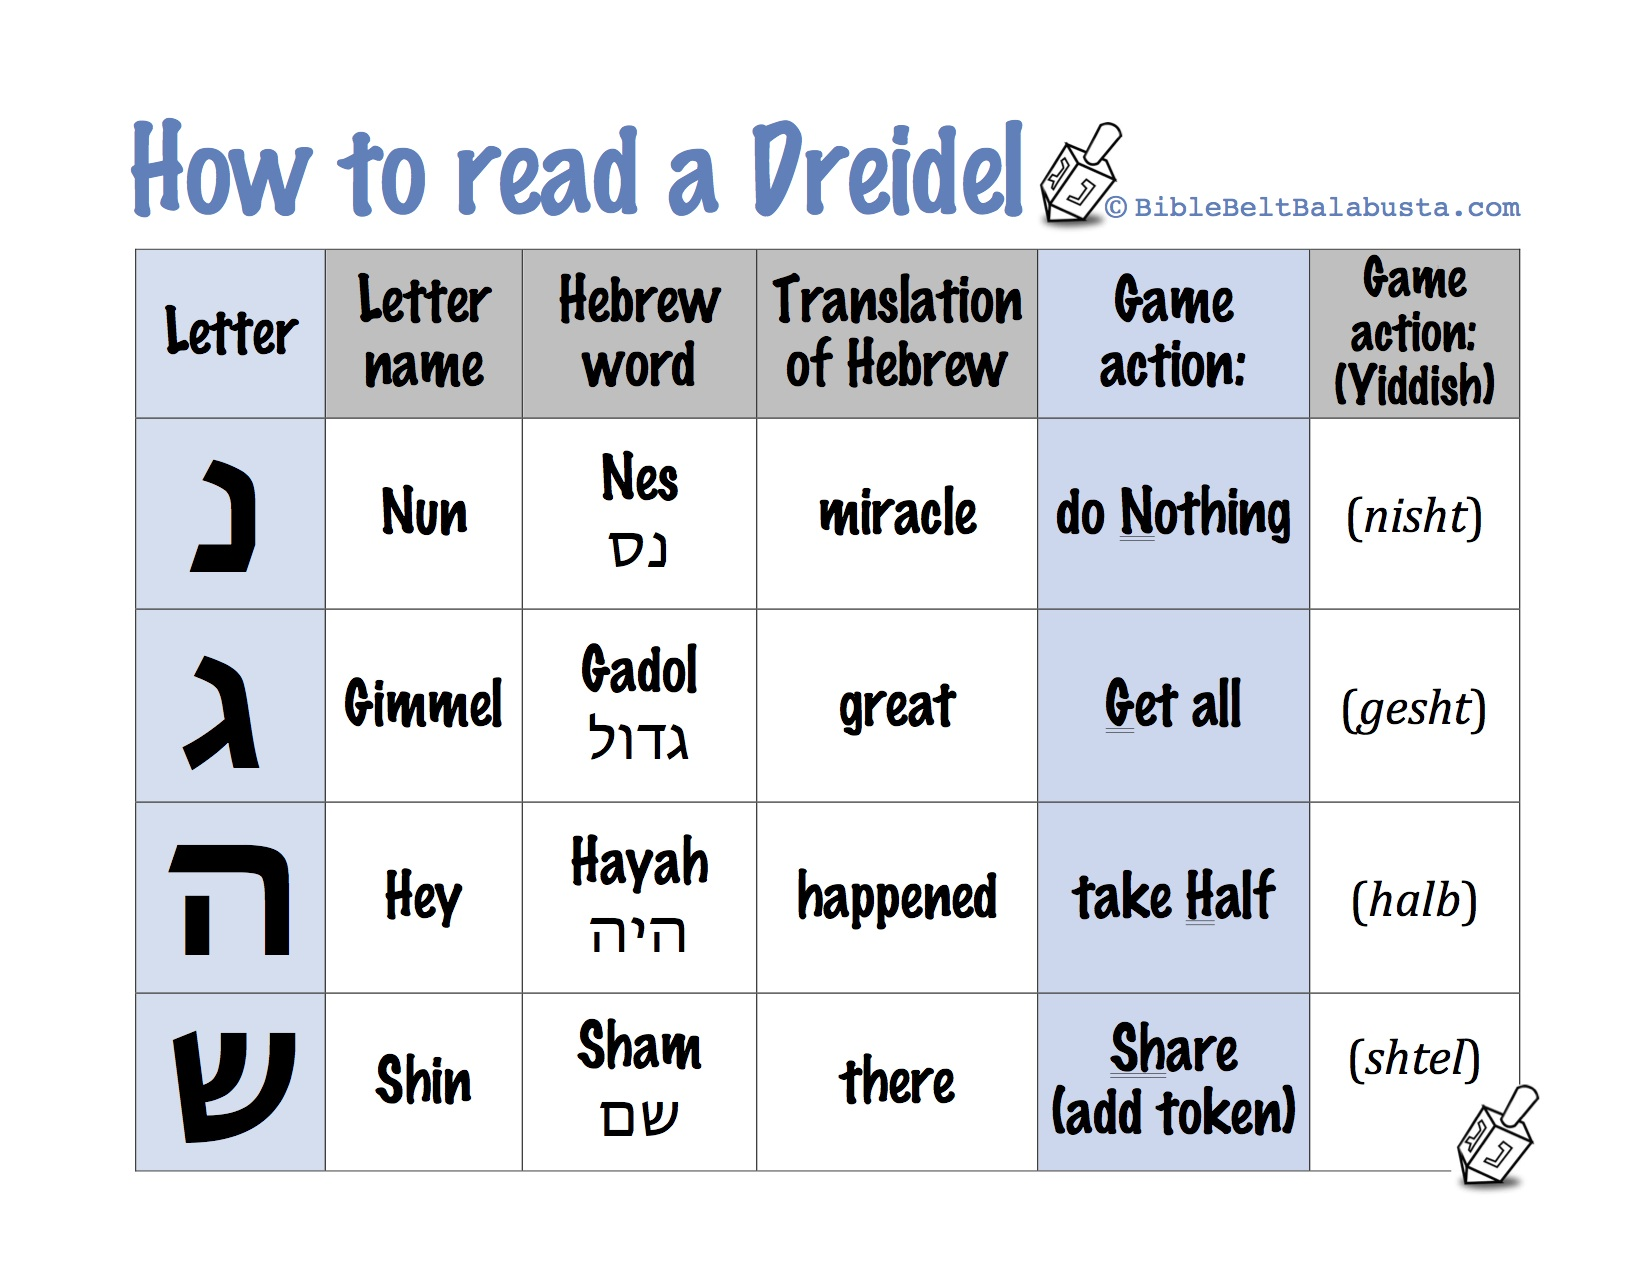 graphic relating to Dreidel Game Rules Printable named Printable Dreidel tips, letter names and meanings Bible